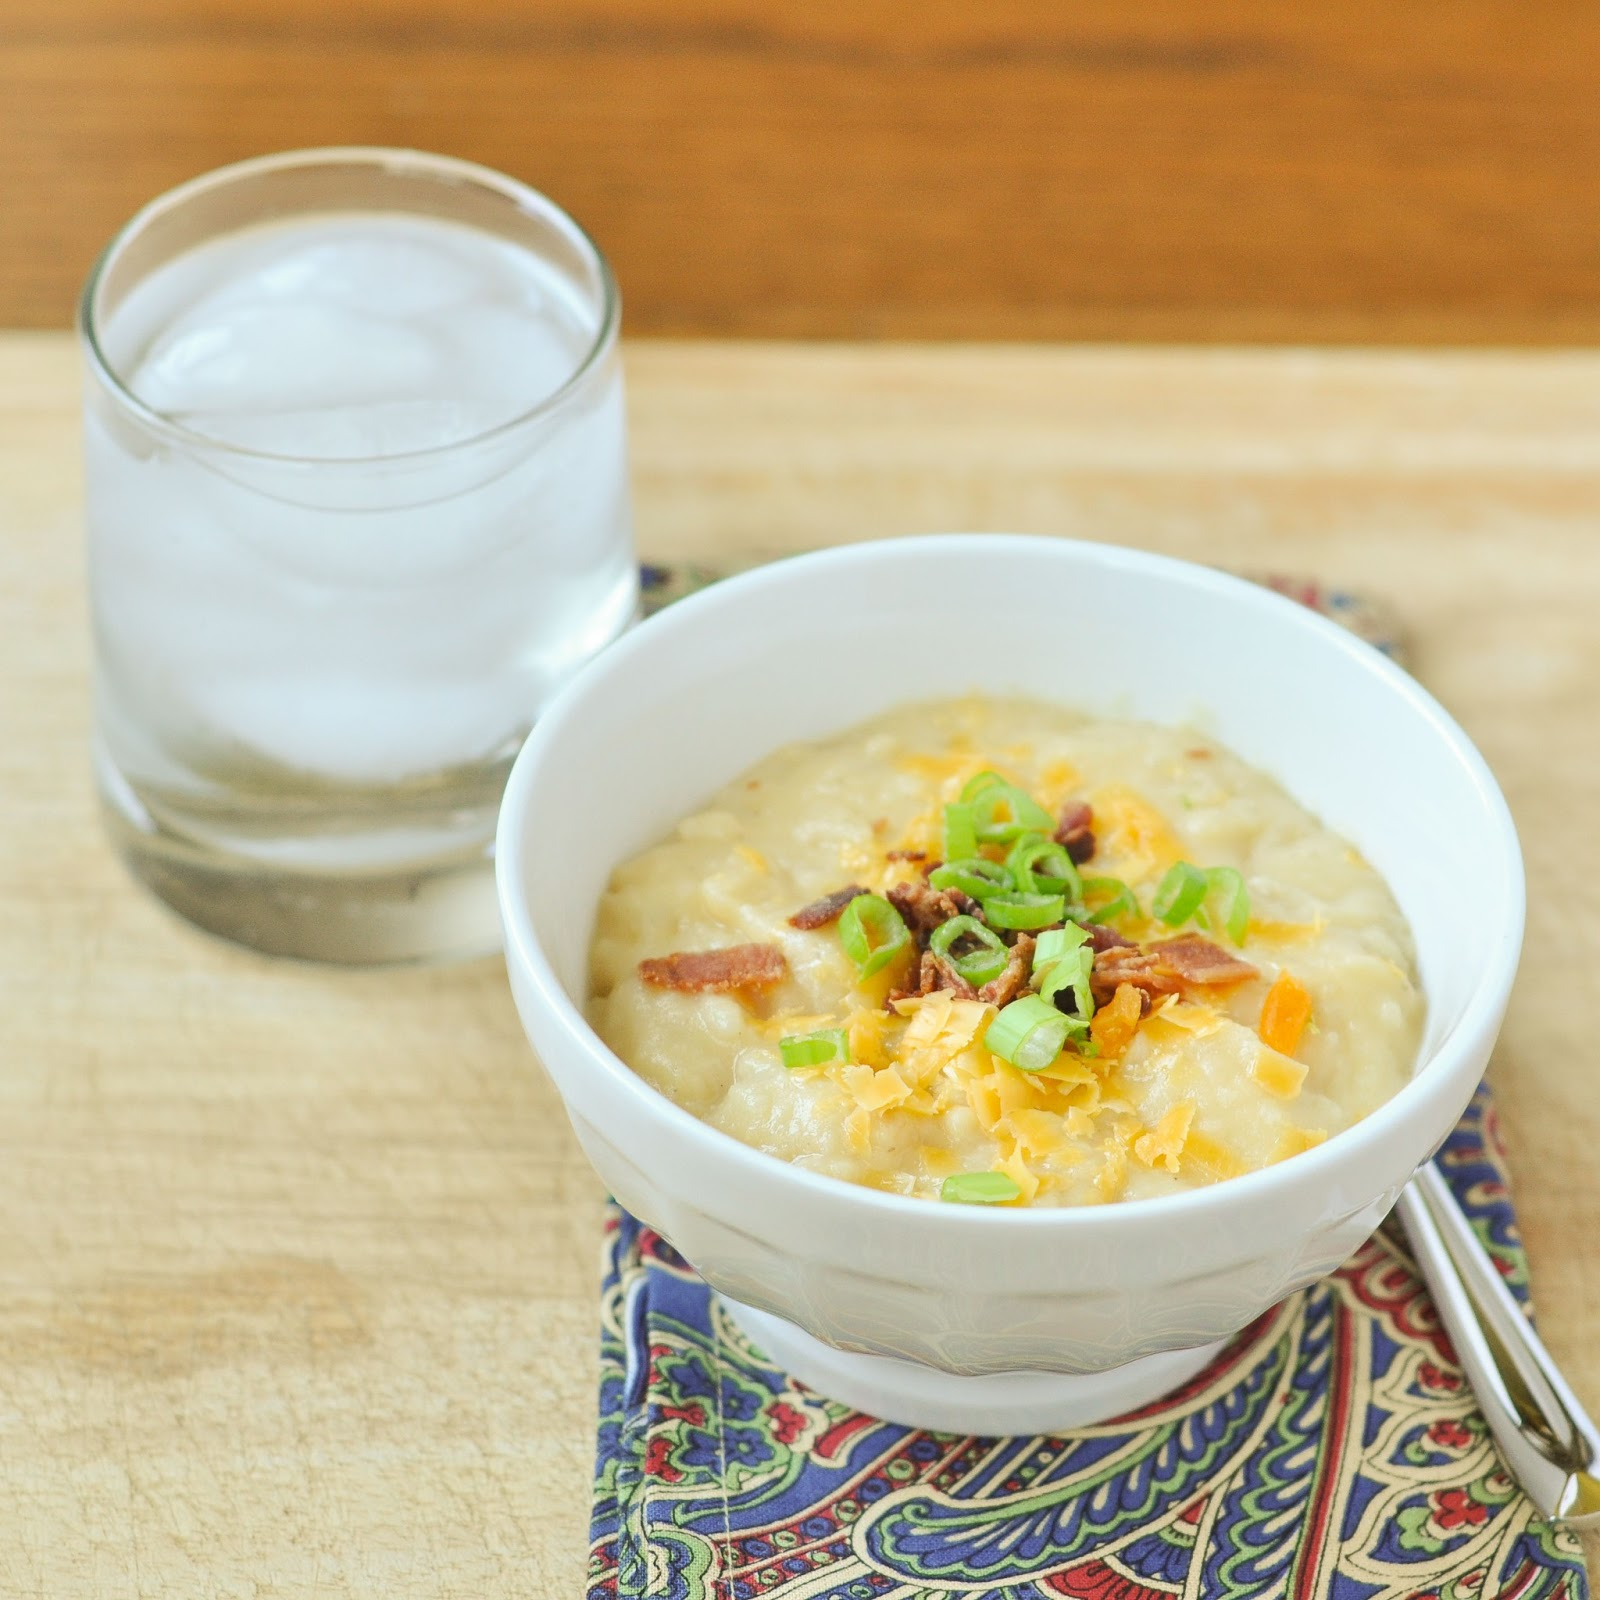 Good Thymes and Good Food: Loaded Baked Potato Soup - Slow Cooker